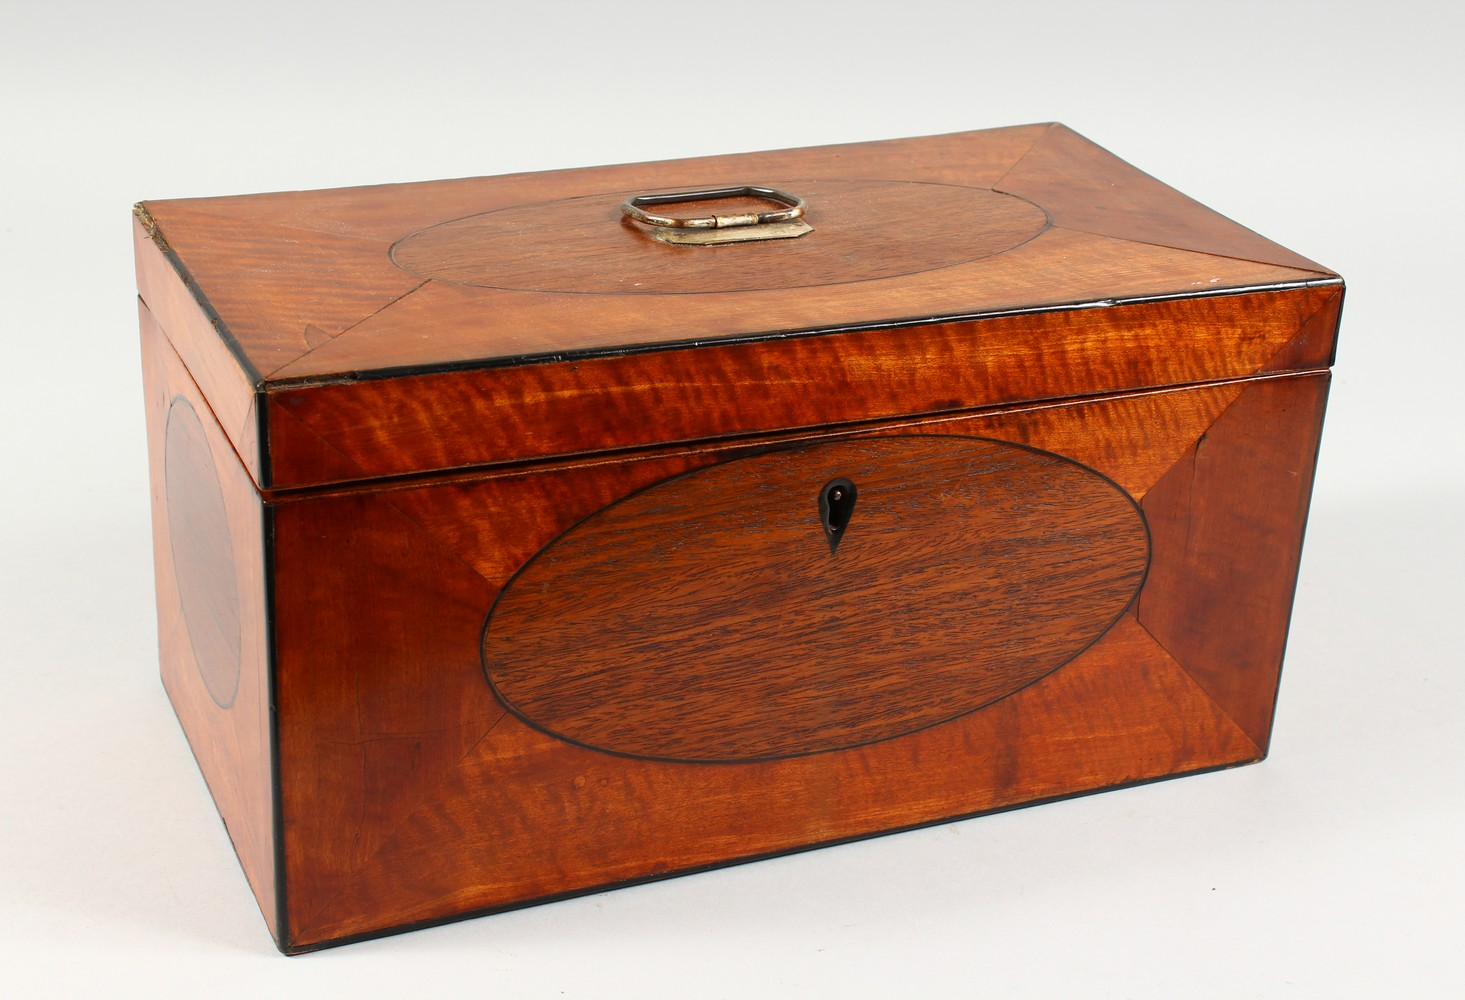 Lot 1476 - A 19TH CENTURY SATINWOOD RECTANGULAR TEA CADDY. 13ins wide.